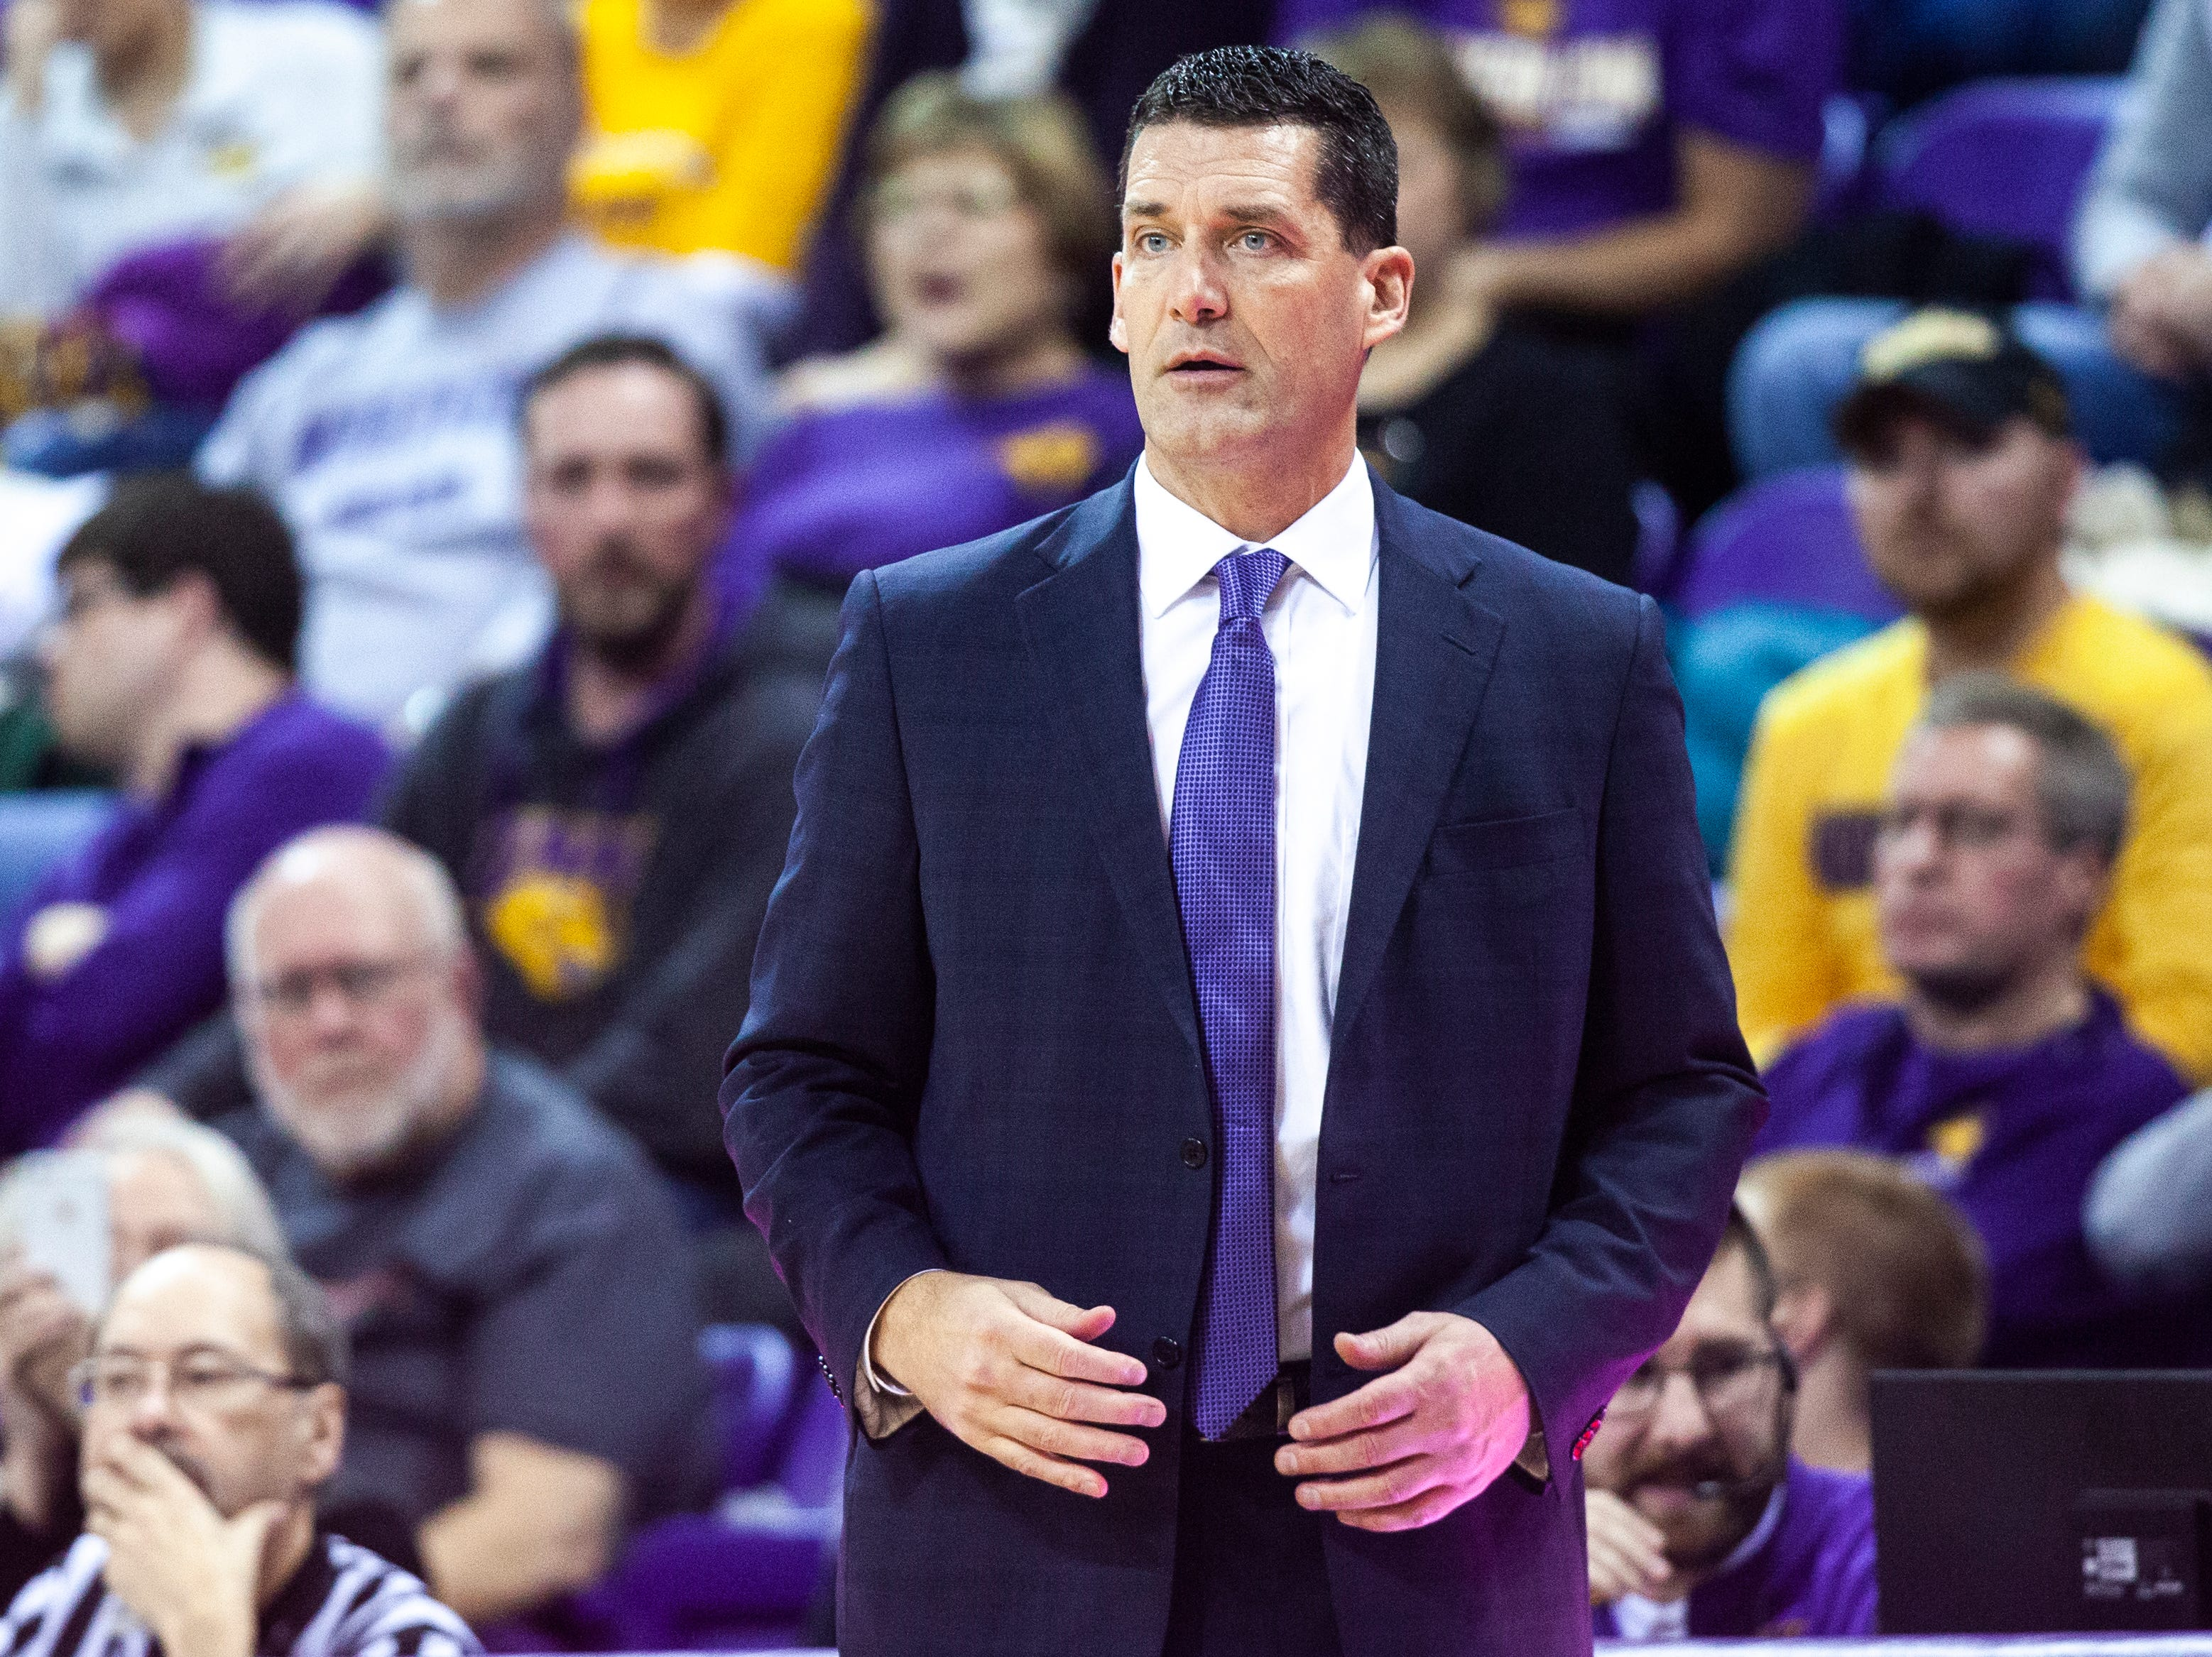 Northern Iowa head coach Ben Jacobson looks on during a NCAA Missouri Valley Conference men's basketball game on Saturday, Jan. 5, 2019, at the McLeod Center in Cedar Falls, Iowa.